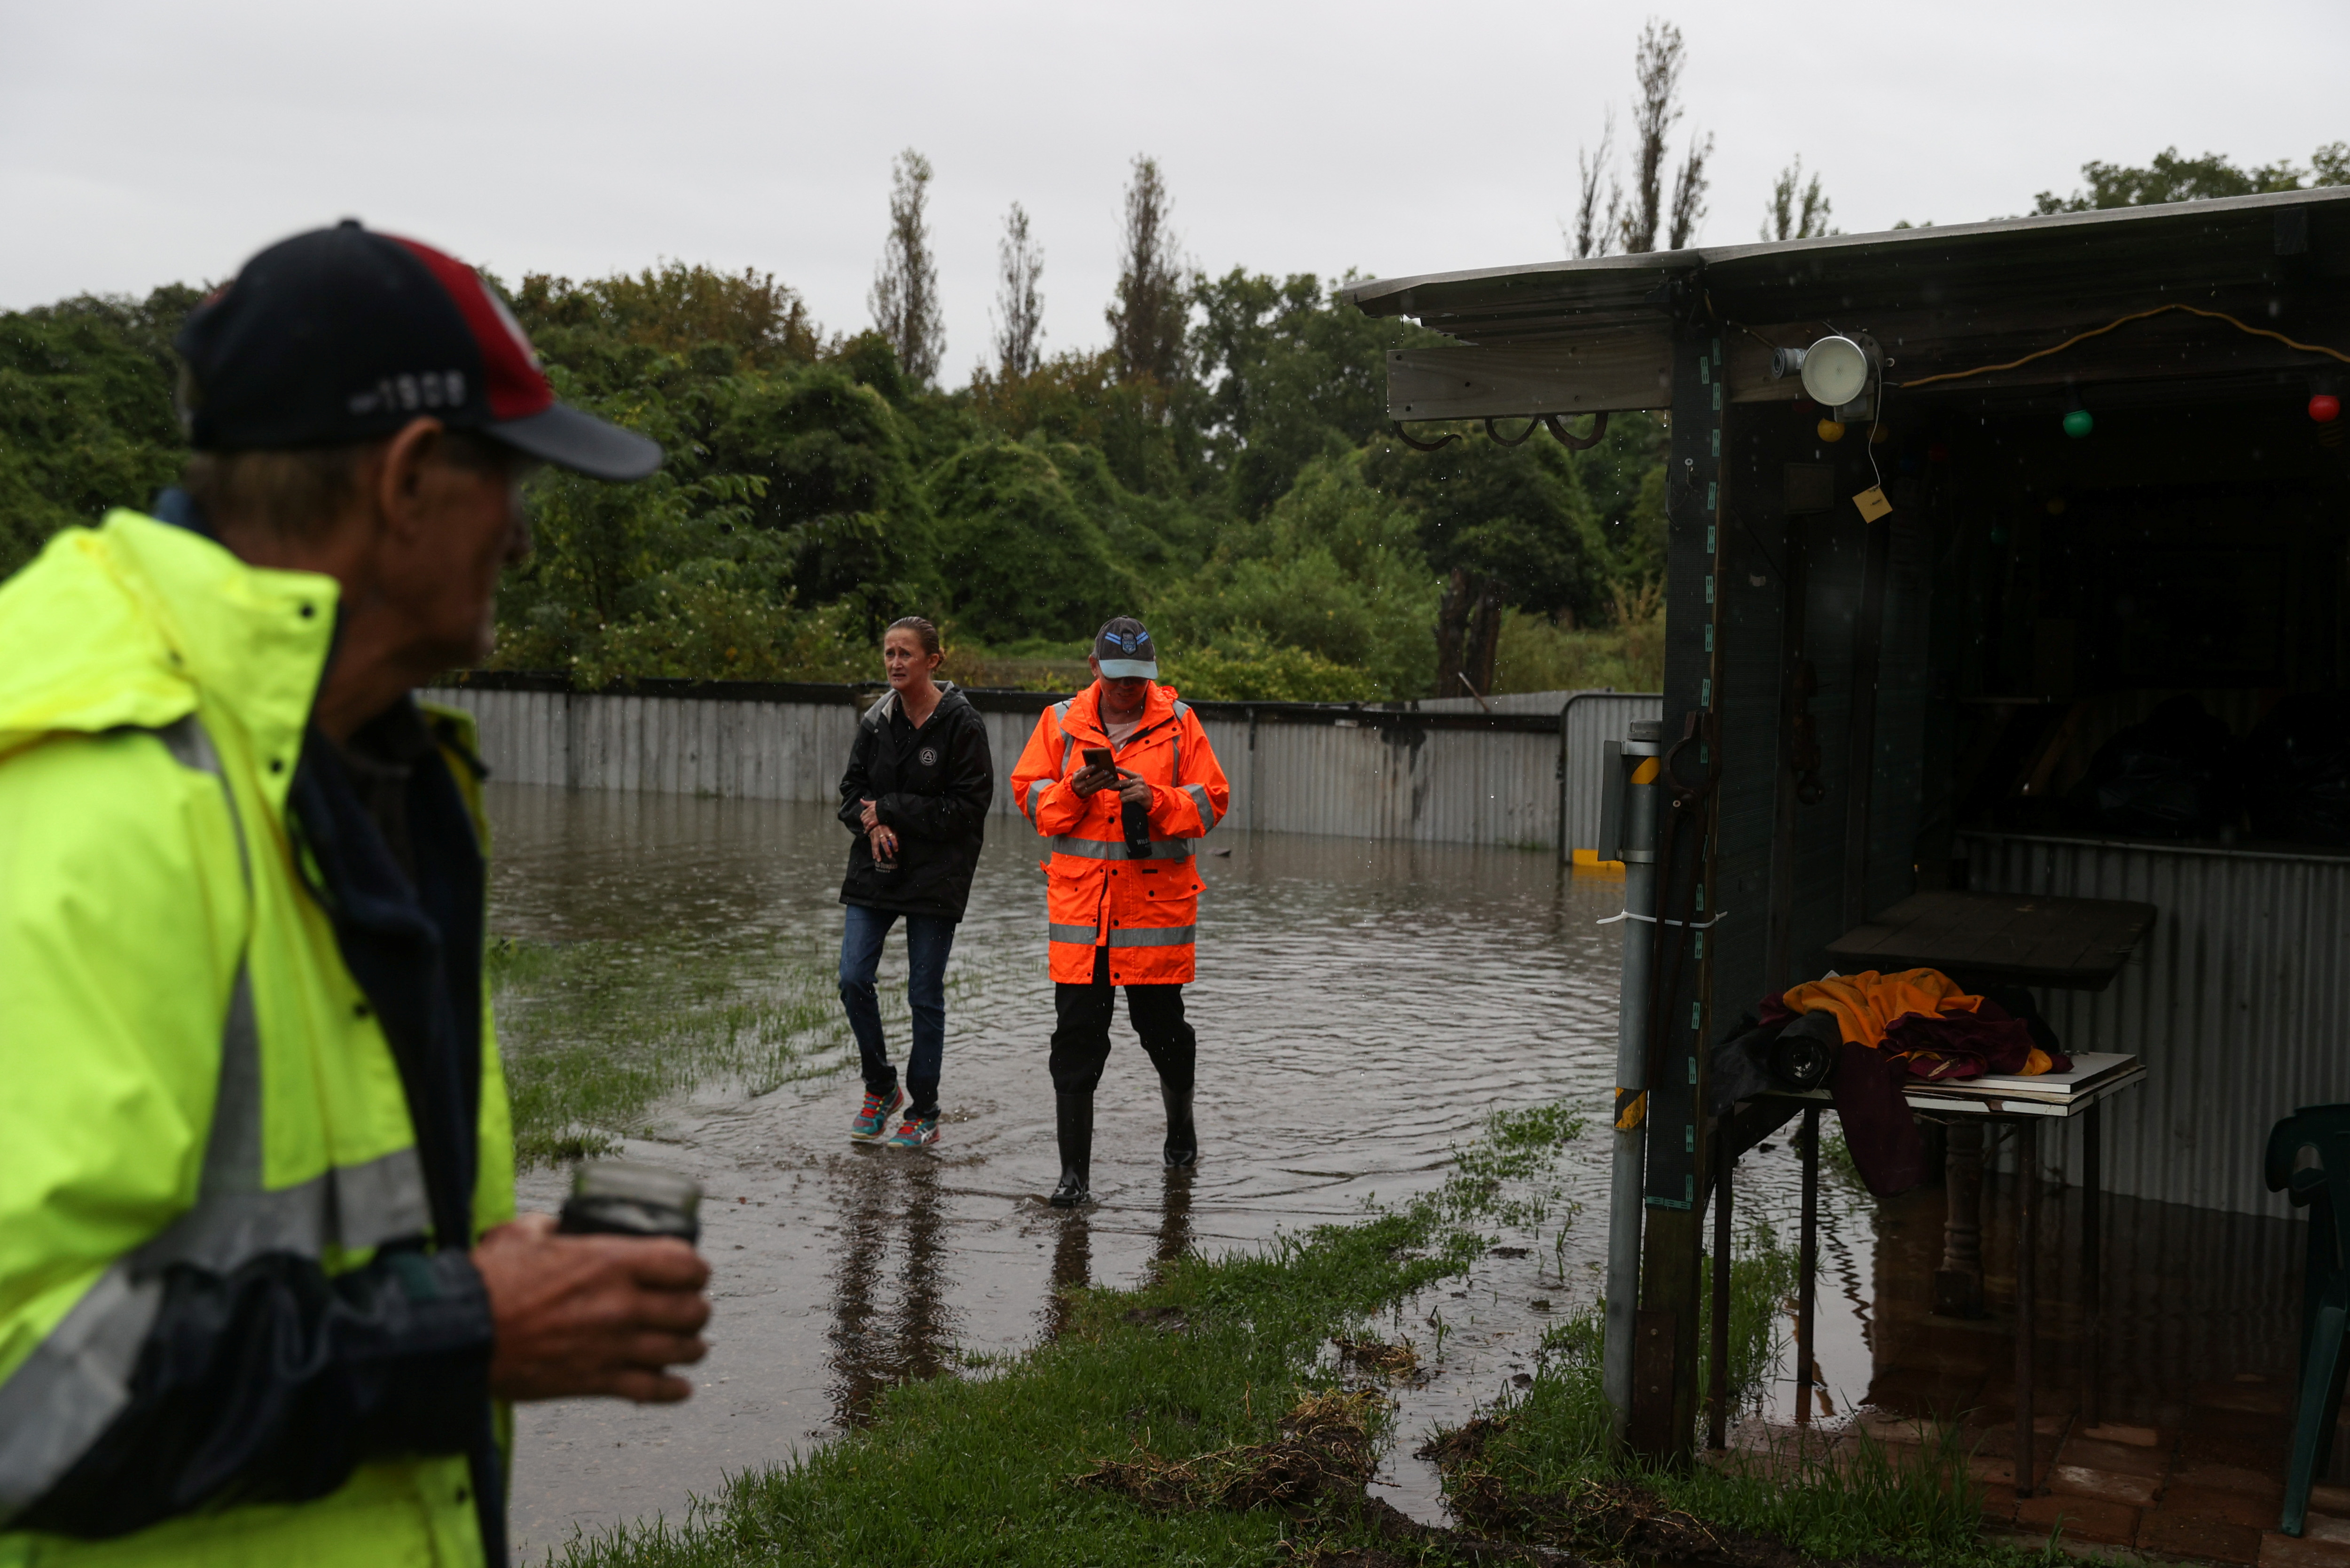 Local residents walk through their property to check on a house while floodwaters rise in the suburb of Riverstone, as the state of New South Wales experiences widespread flooding and severe weather, in Sydney, Australia, March 22, 2021.  REUTERS/Loren Elliott